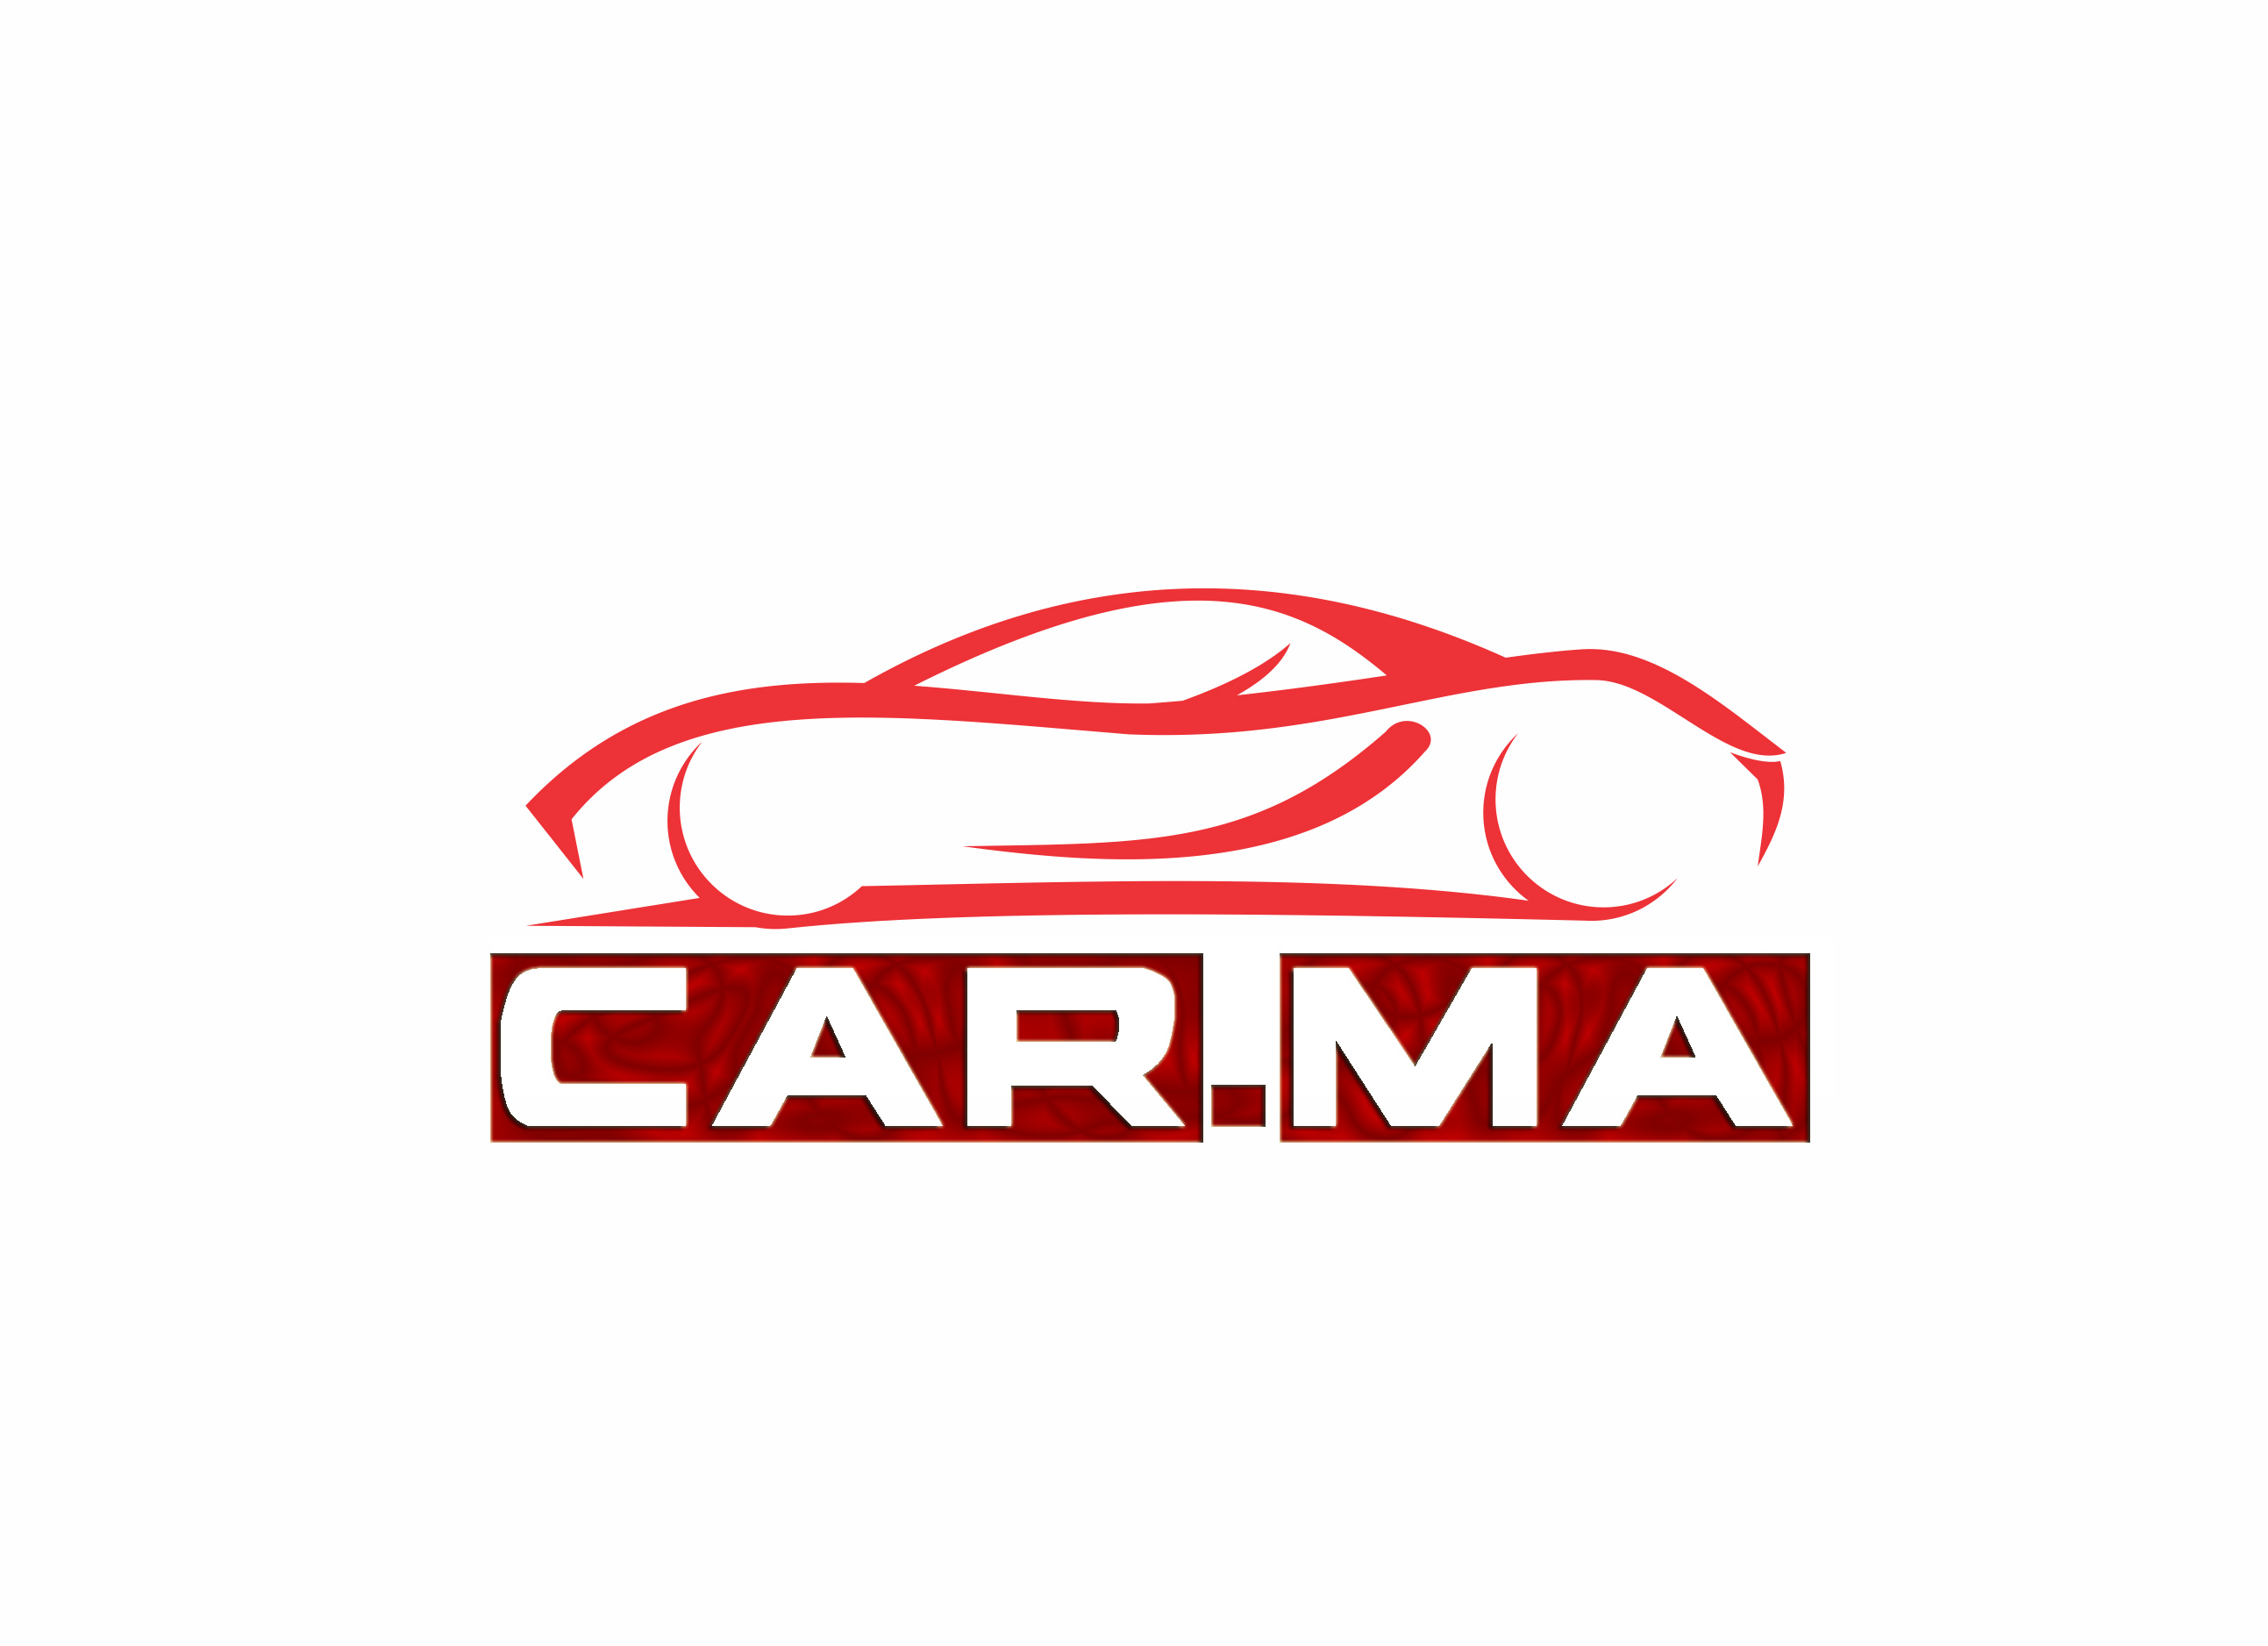 Logo Design by Shailesh Sharma - Entry No. 115 in the Logo Design Contest New Logo Design for car.ma.